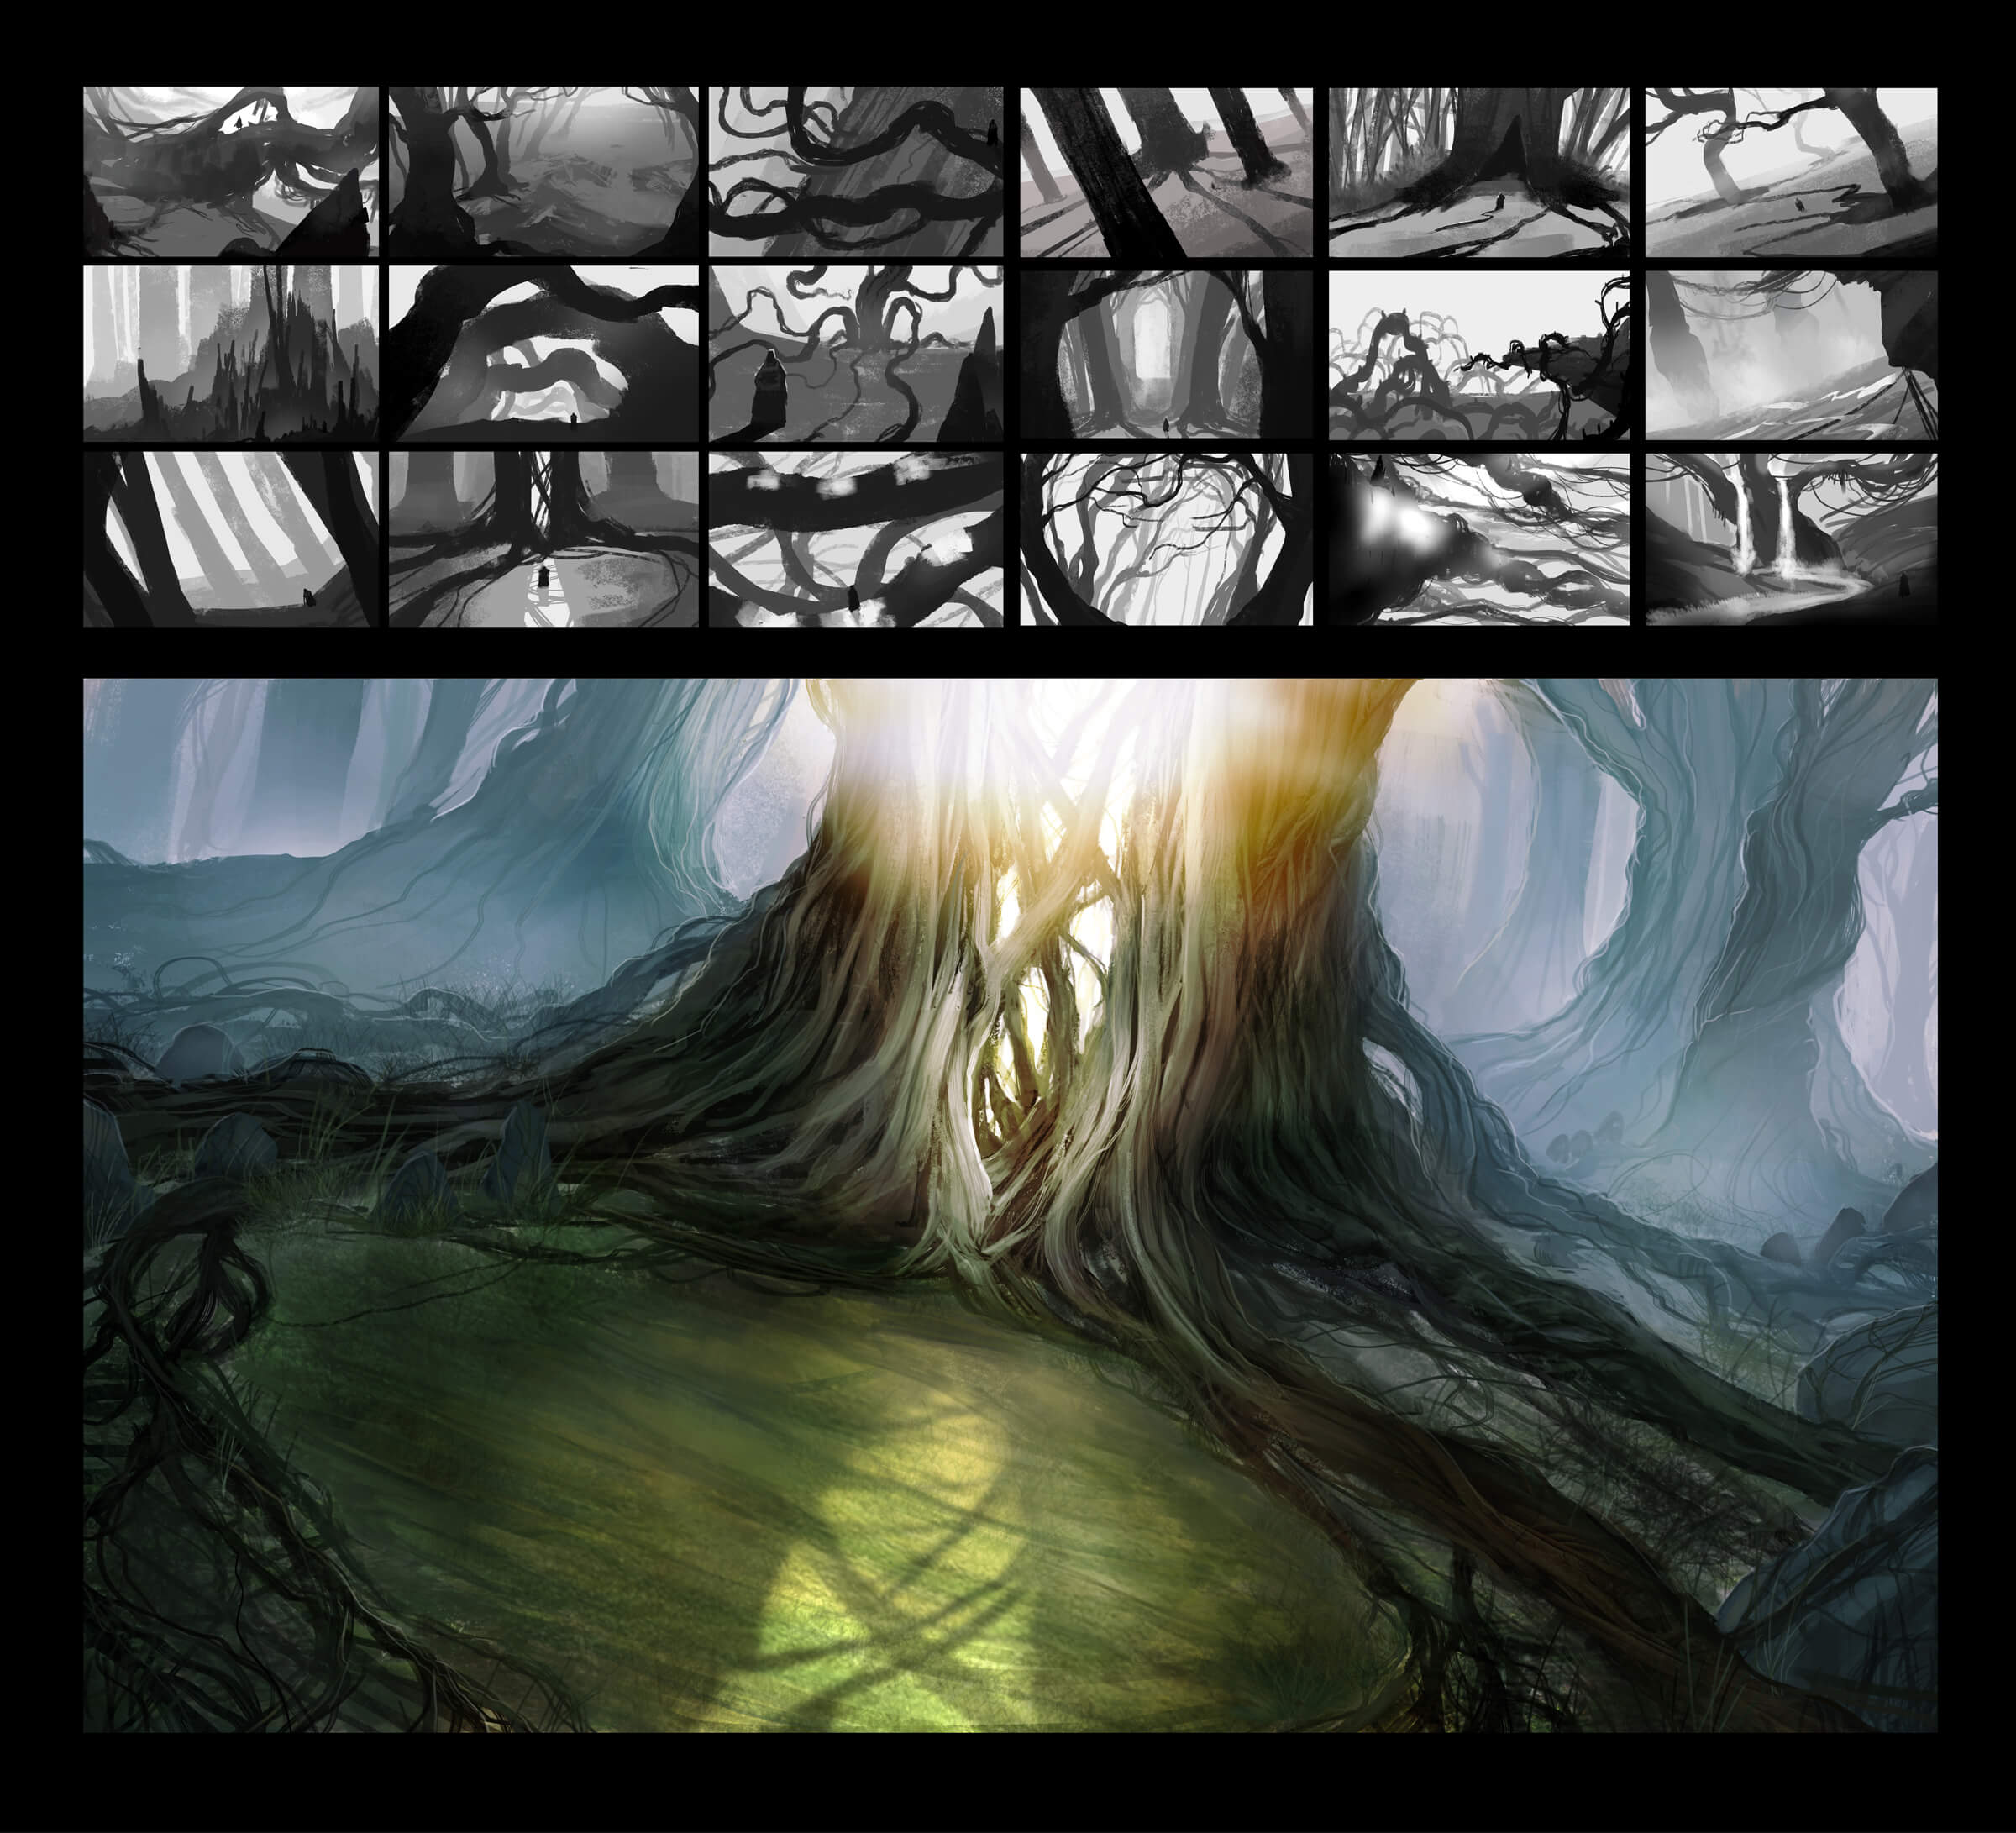 19 digital paintings of forest scenes, the largest of which shows sun shining through gnarled vines